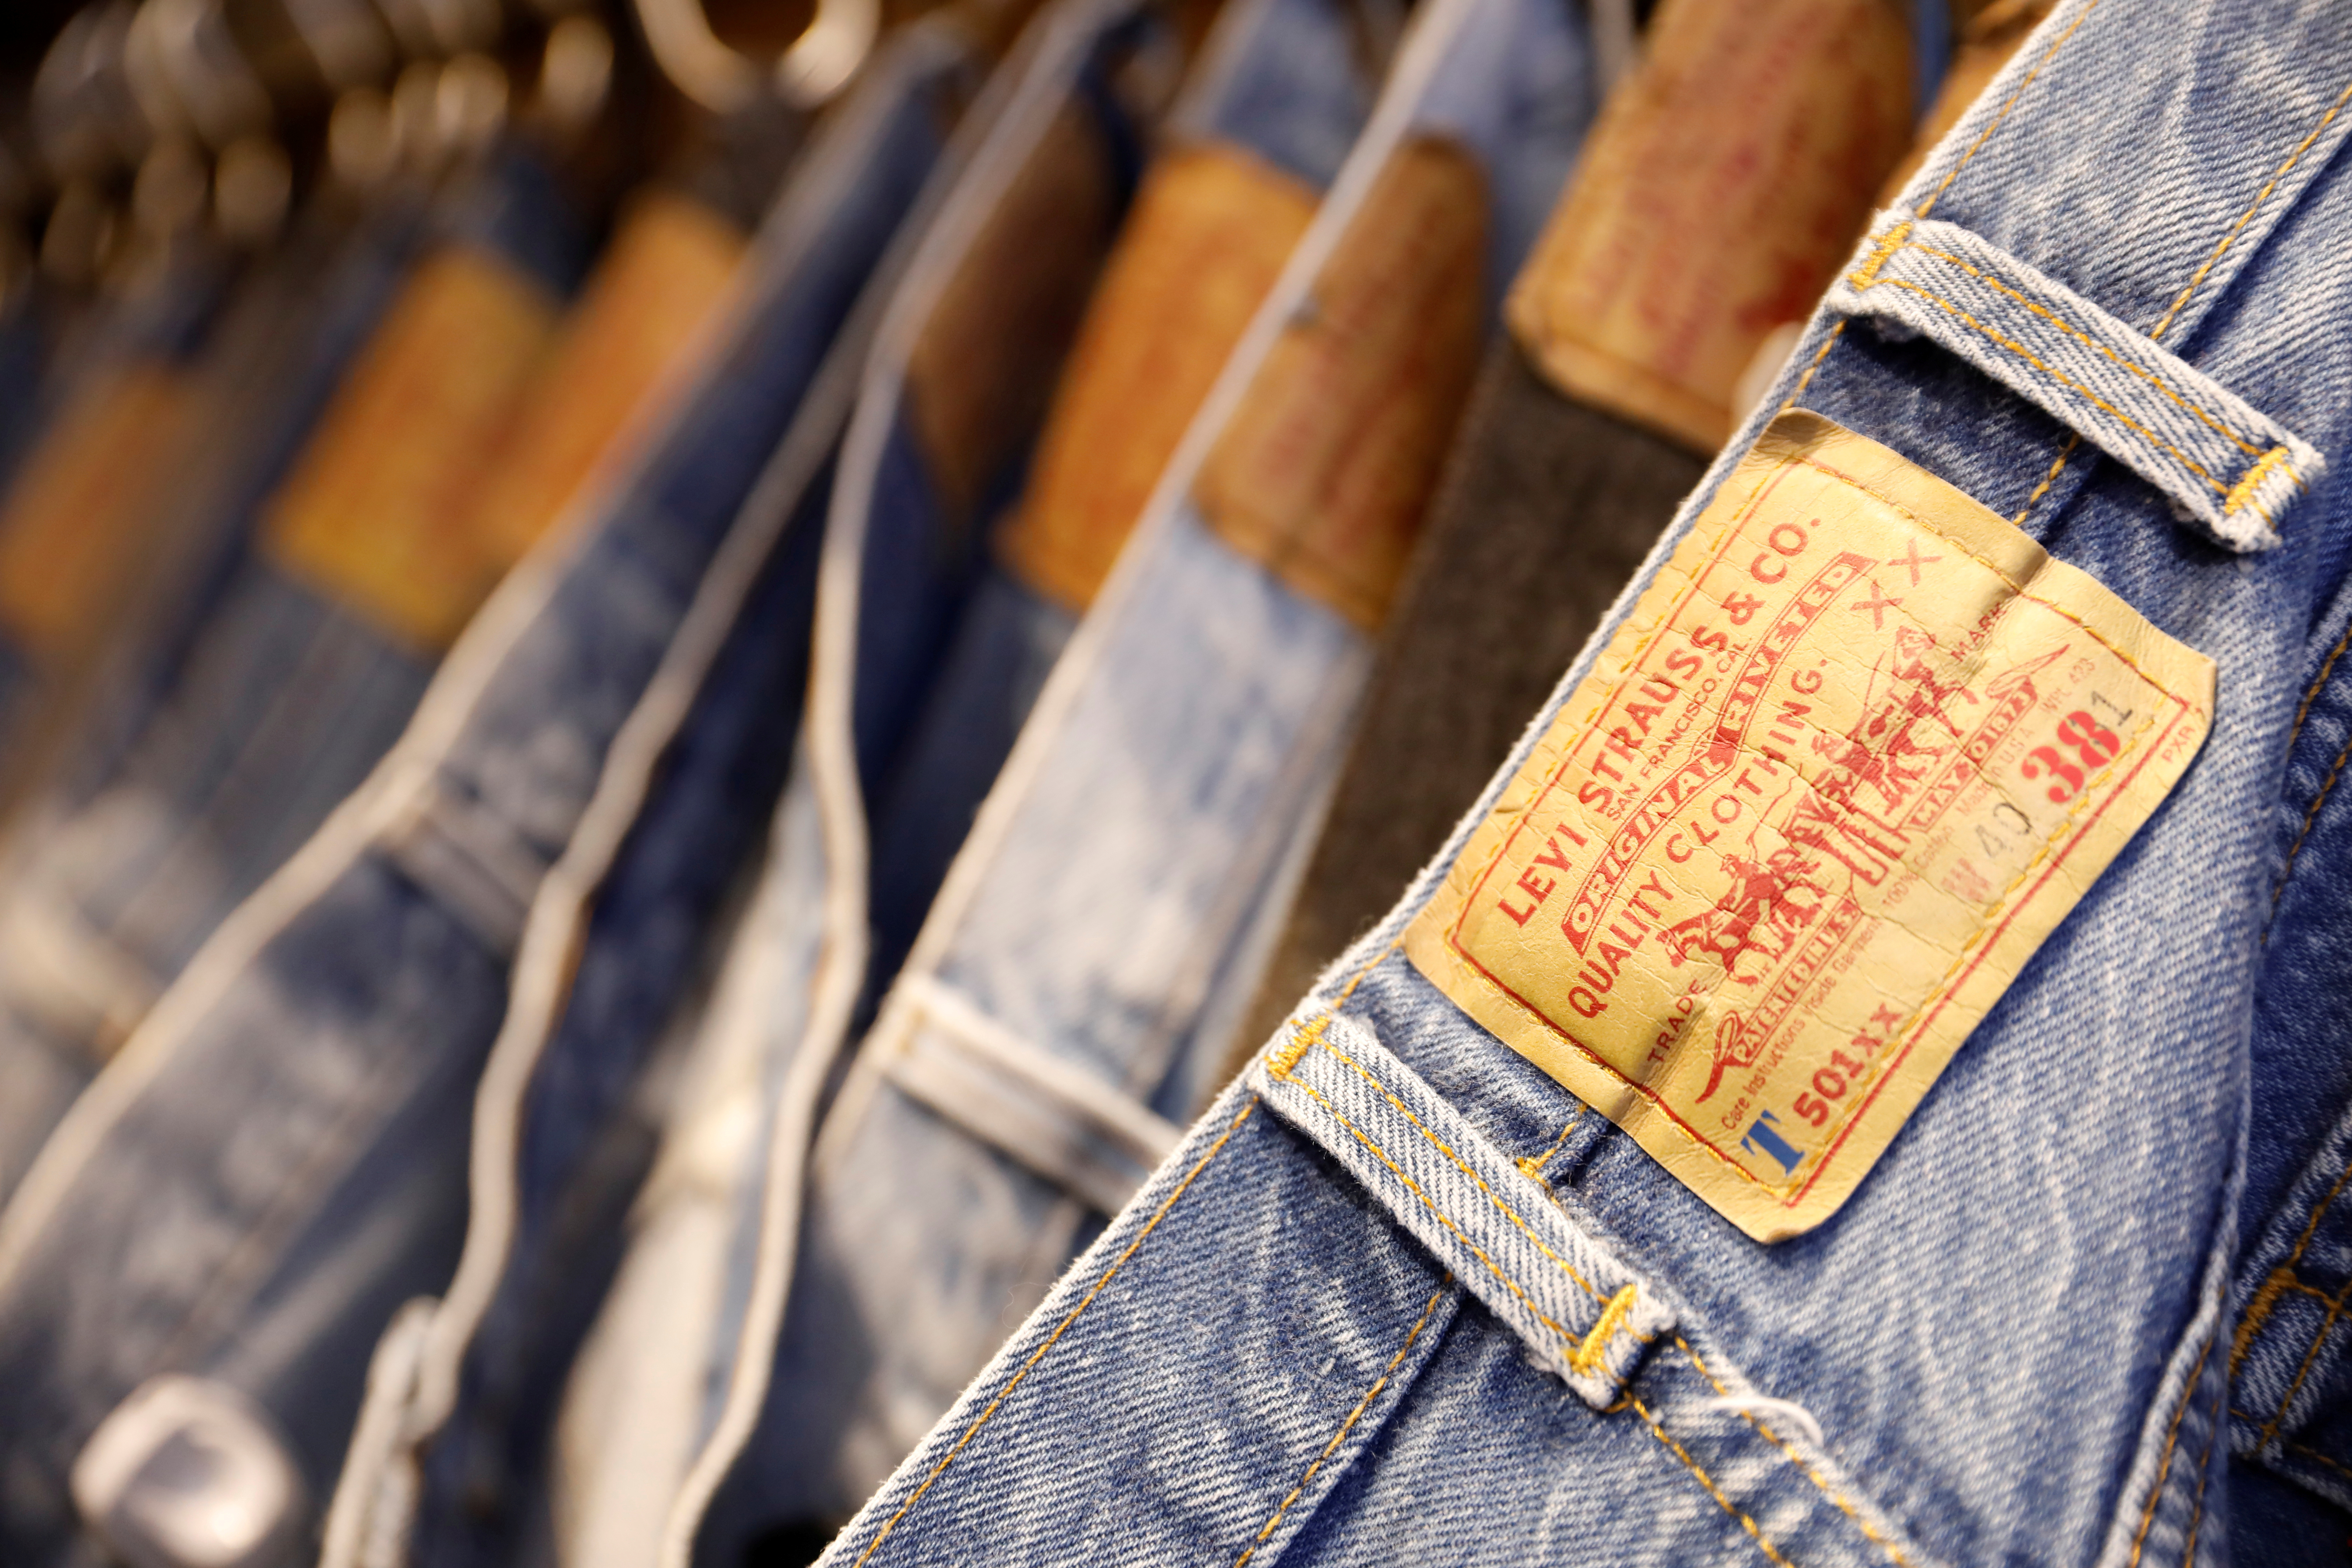 Jeans are displayed at a Levi Strauss store in New York, U.S., March 19, 2019. REUTERS/Shannon Stapleton